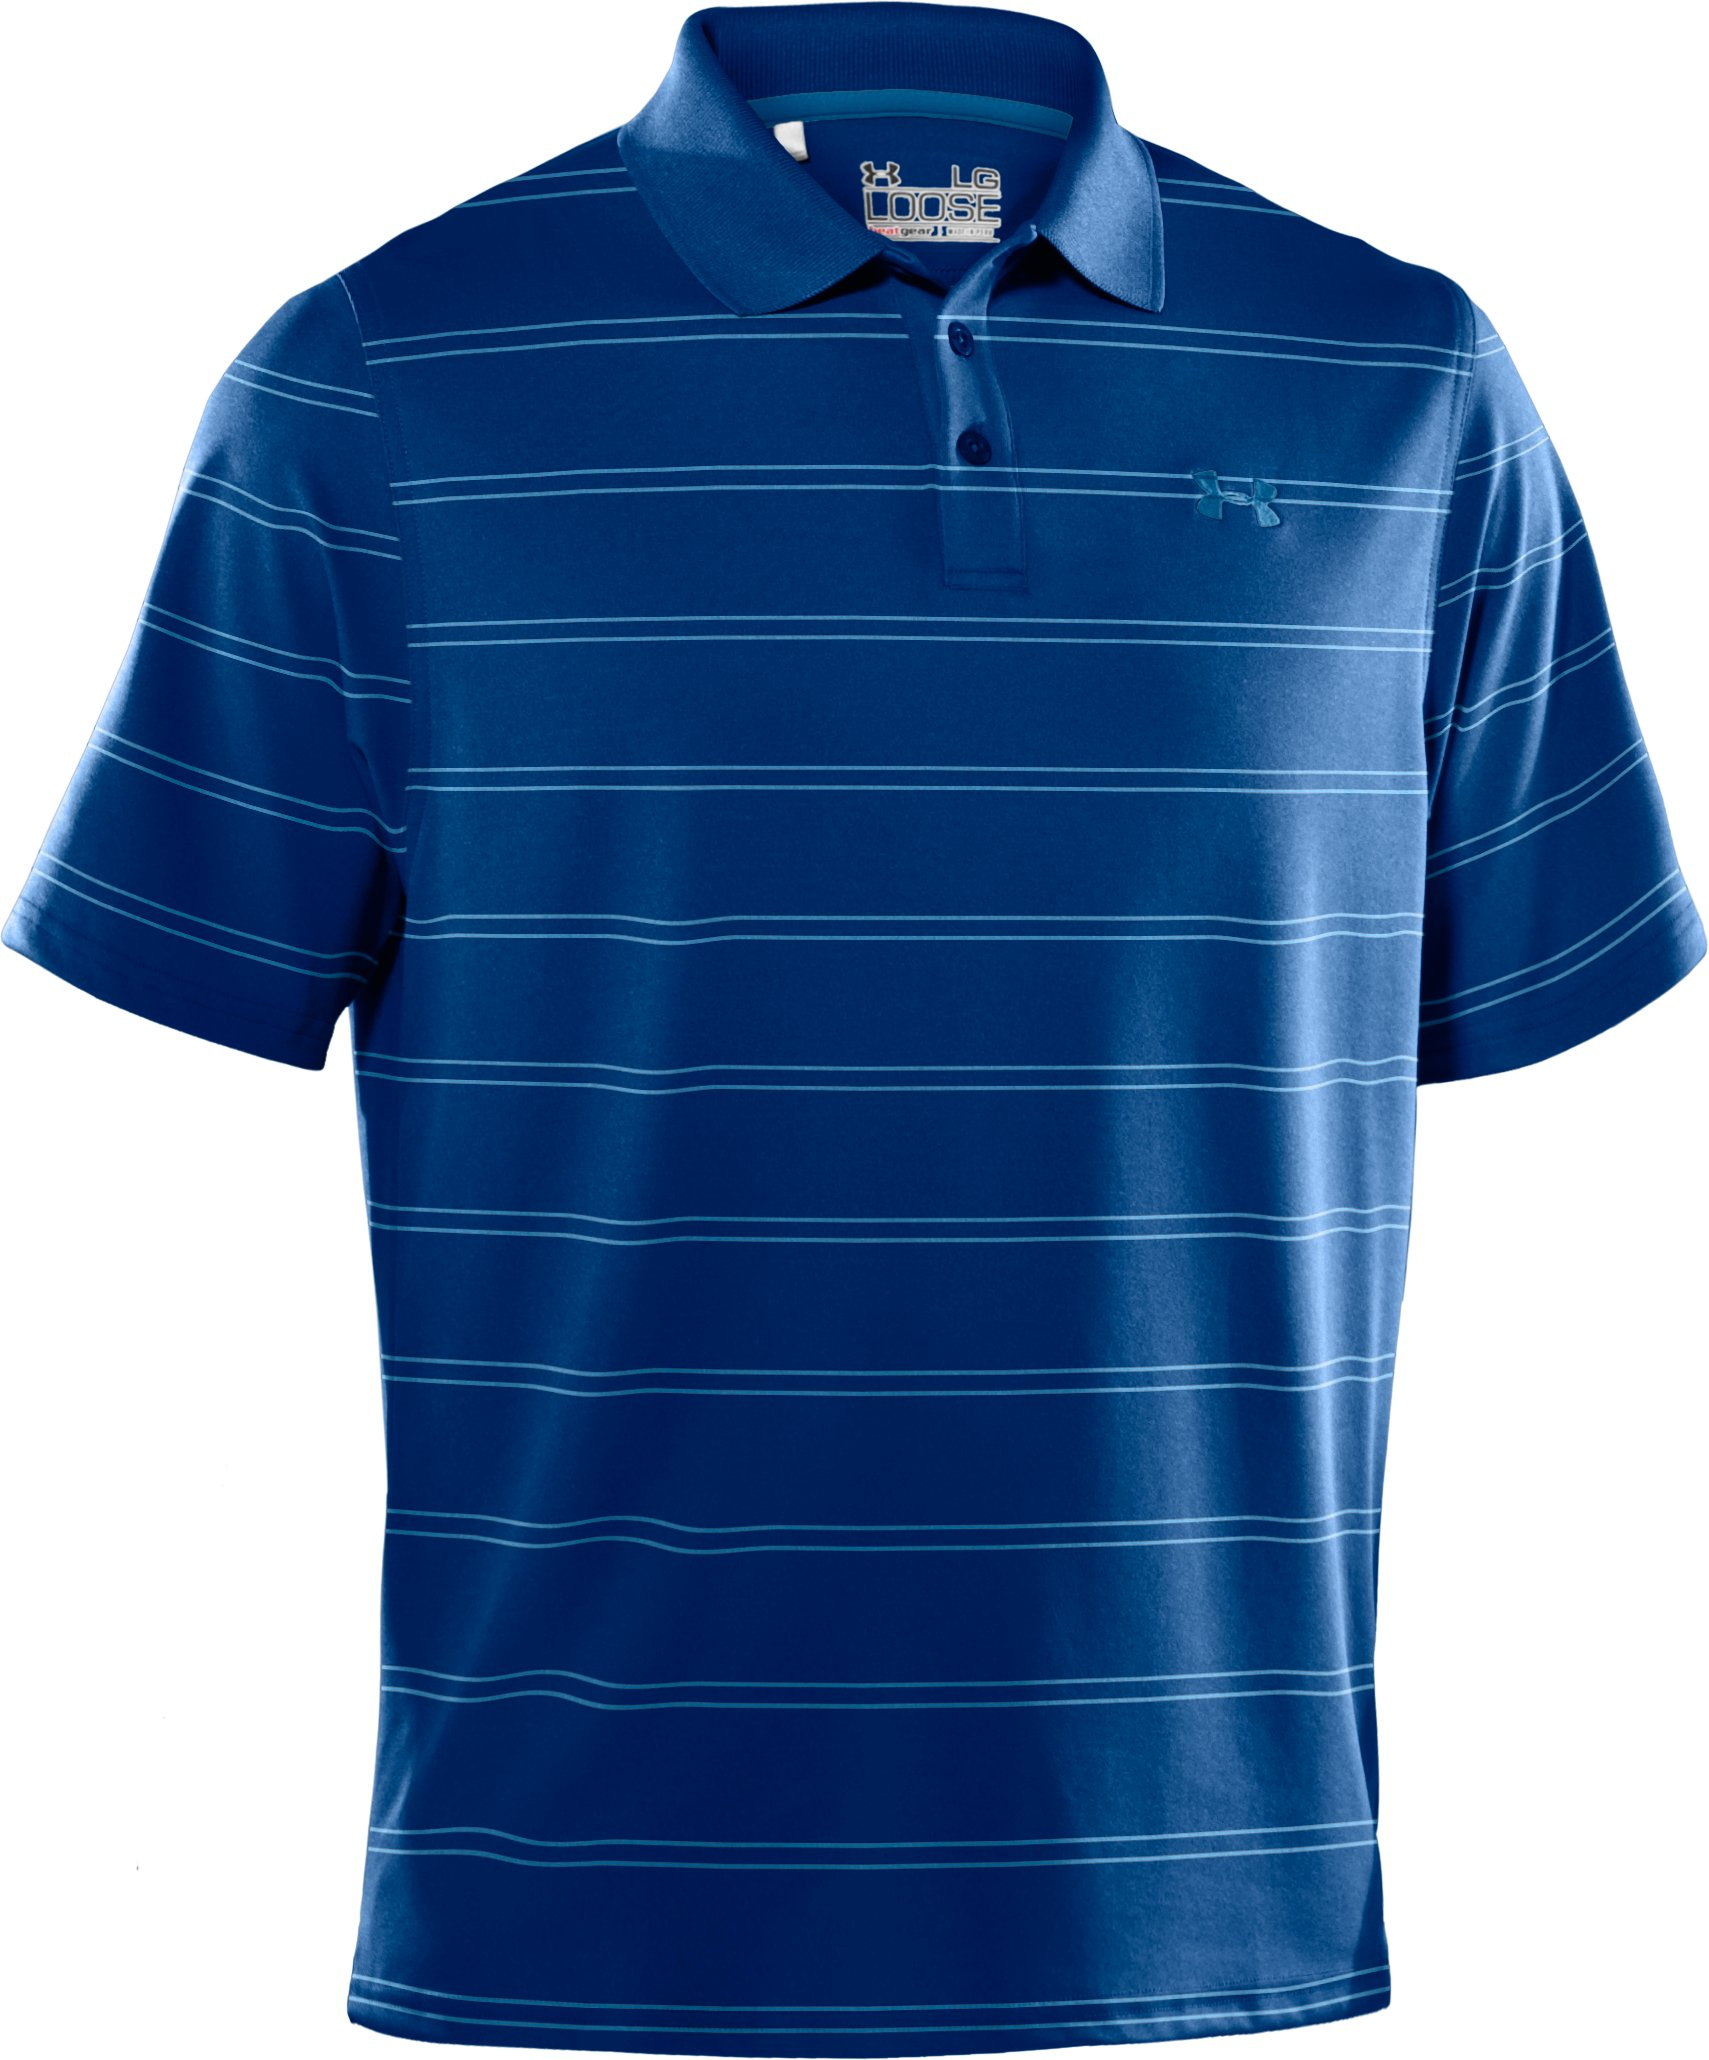 Men's UA Draw Stripe Pique Polo 2.0, EMPIRE BLUE